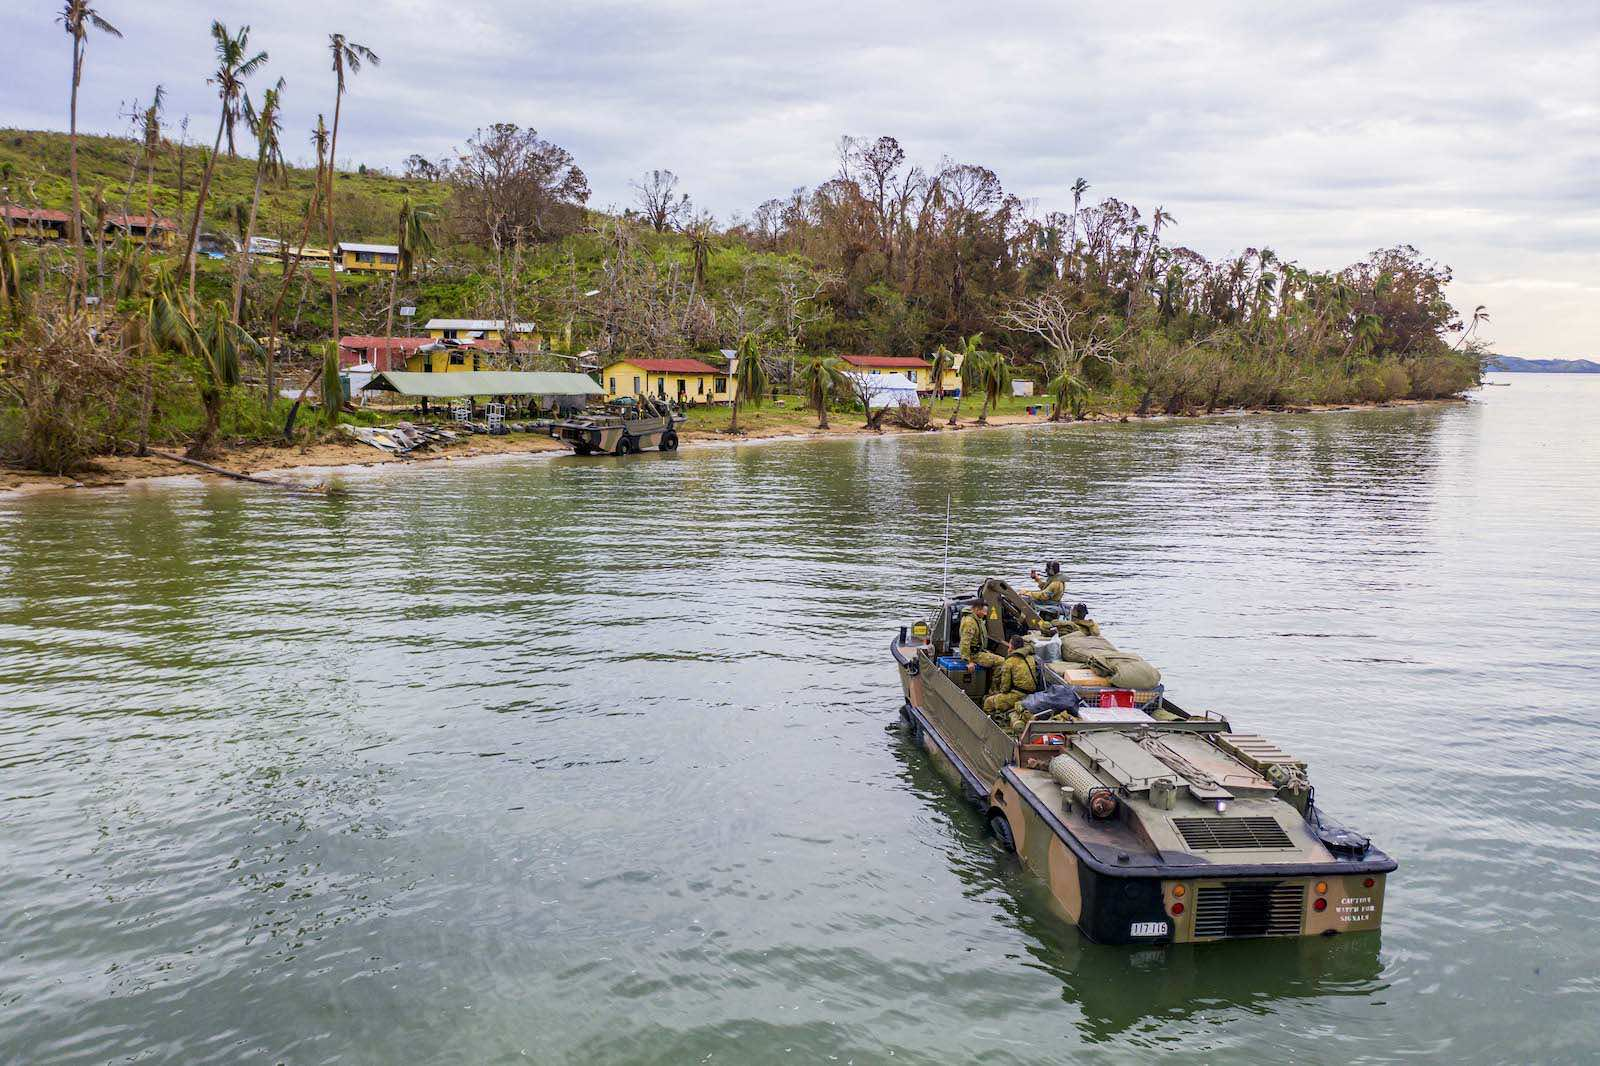 Australian soldiers land on the island of Galoa, near Vanua Levu, in Fiji to drop off supplies required to repair buildings affected by Cyclone Yasa in December 2020 (Department of Defence)